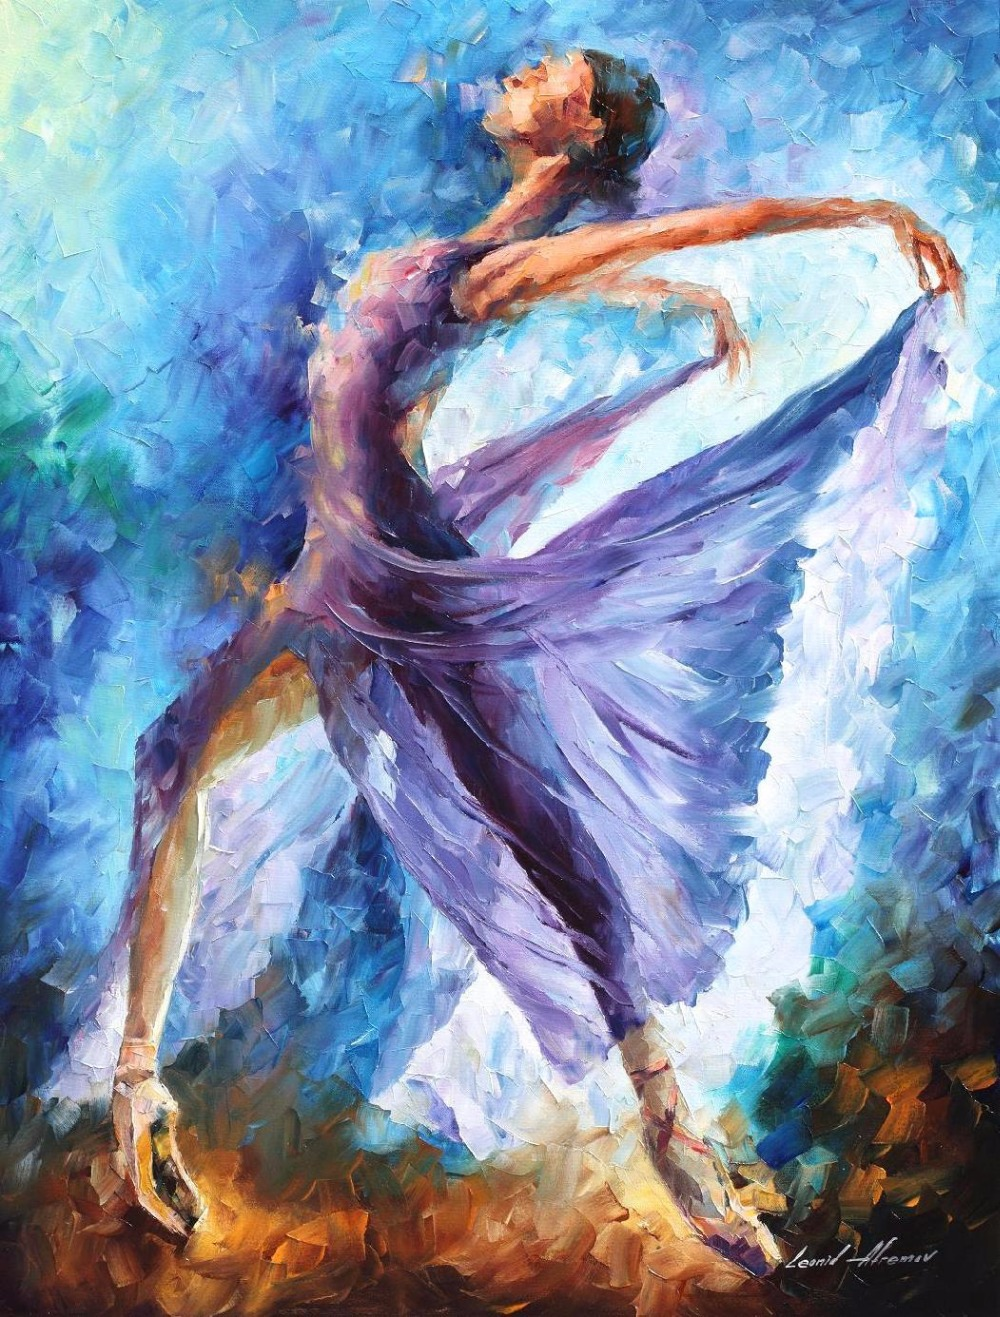 Original watercolor art for sale - Landscape Painting For Sale Colorful Oil Paintings Canvas Dance Of Angels Modern Wall Art Home Decor